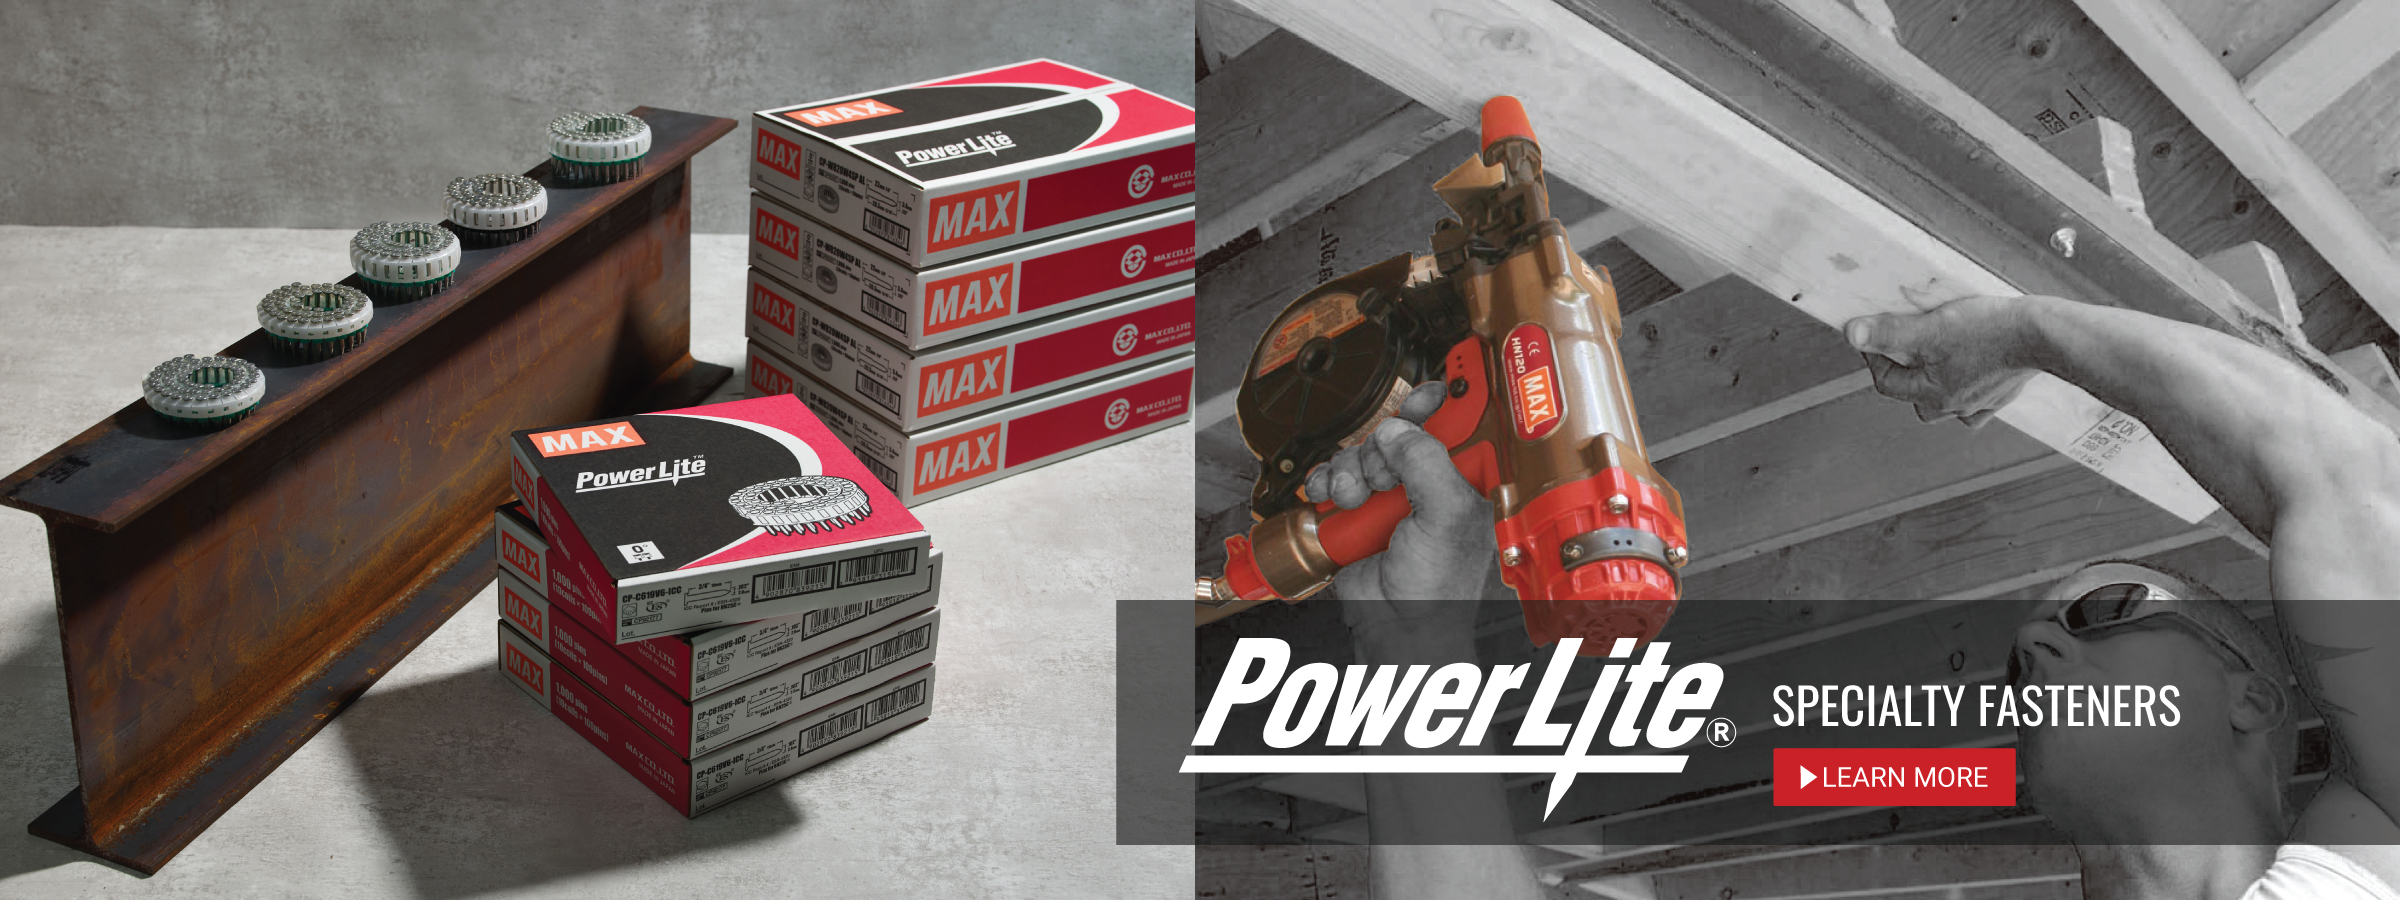 PowerLite Specialty Fasteners for concrete and steel applications